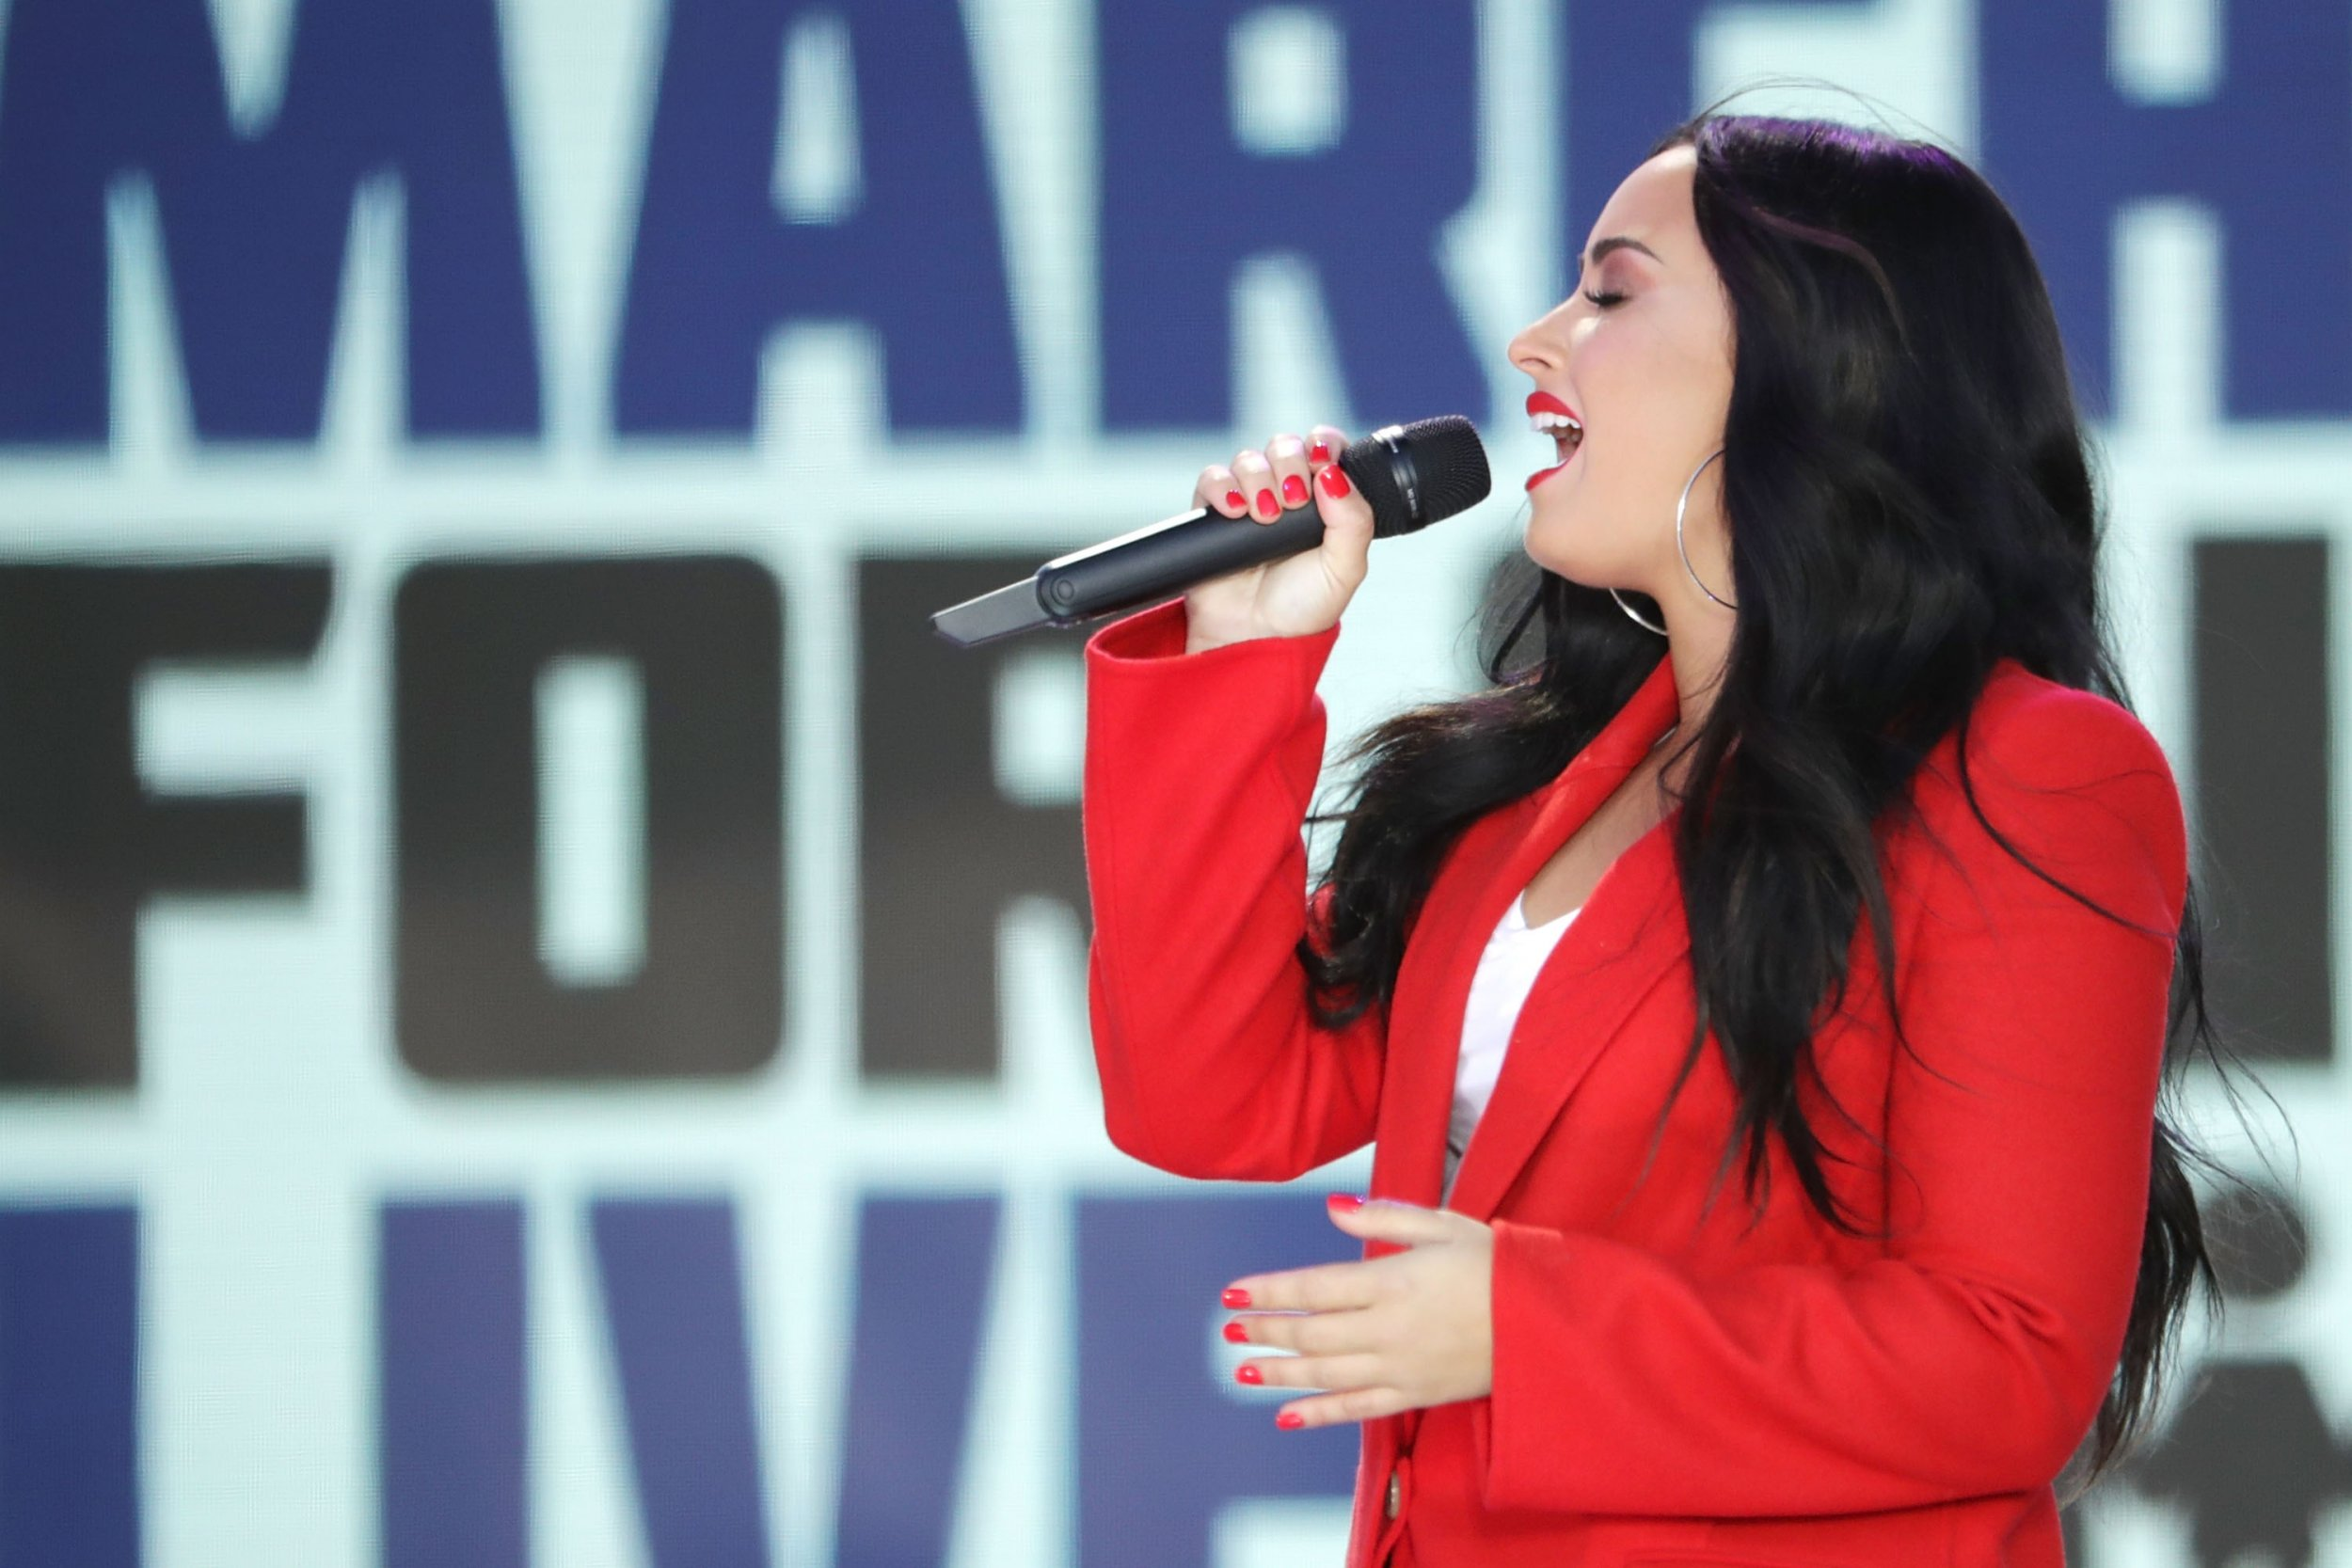 Fans show support as Demi Lovato video shows life before sobriety and darkness of relapse